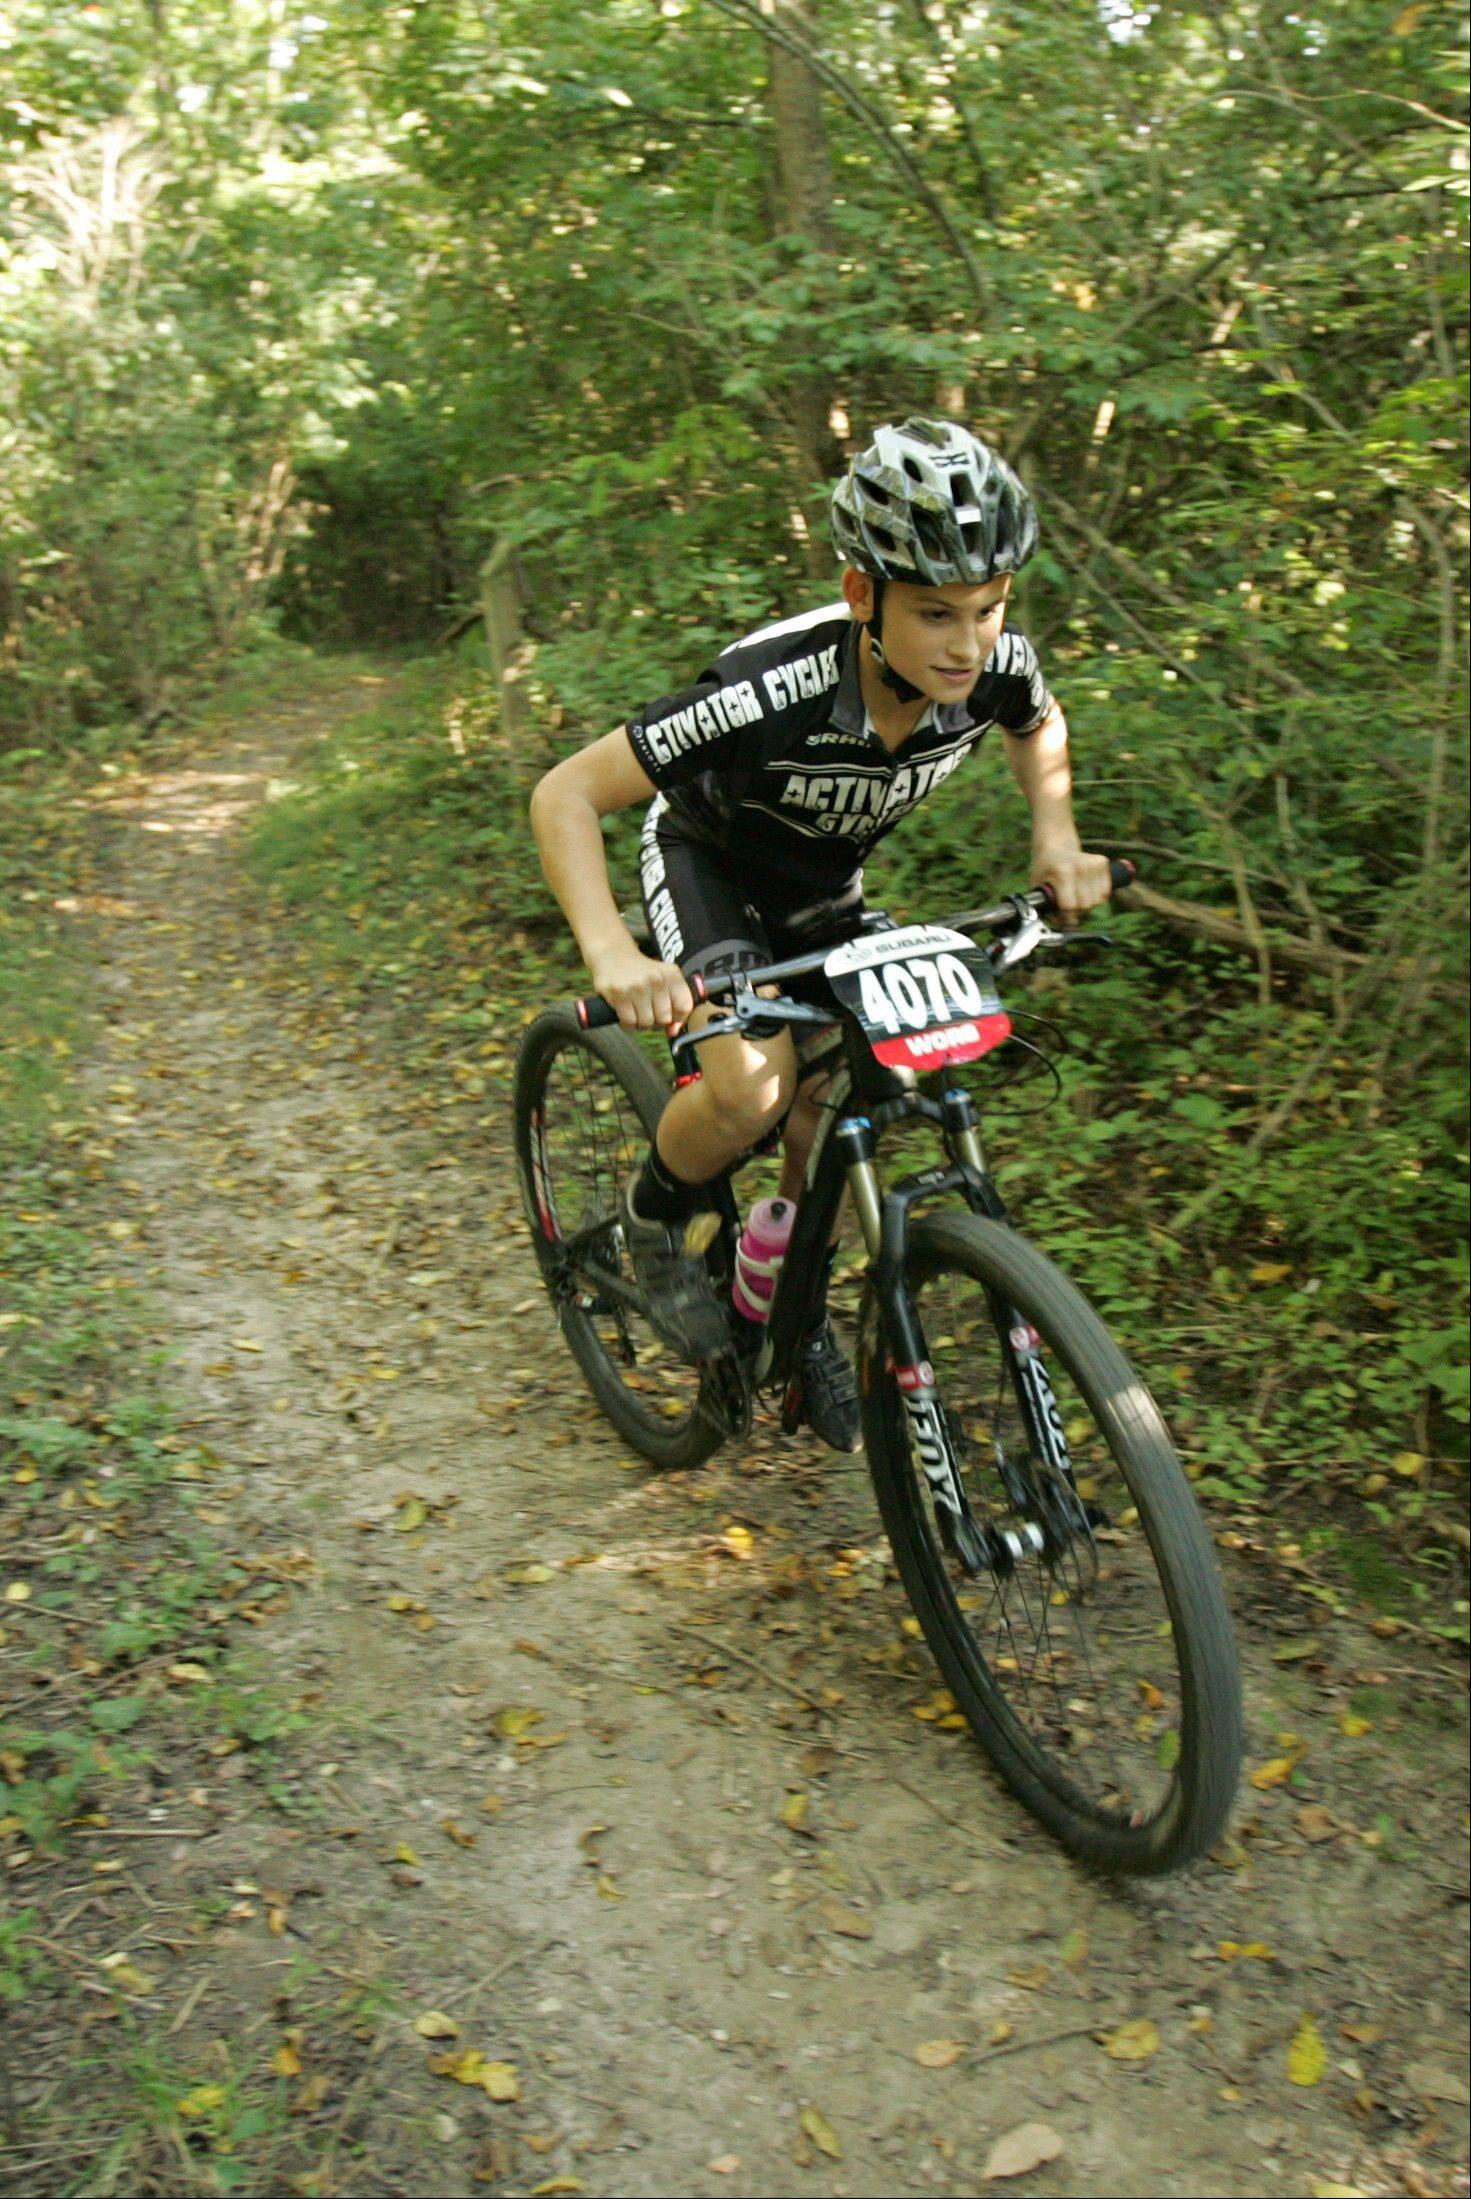 Will Darling, 12, of Vernon Hills makes quick work of a short climb through trails at Raceway Woods in Carpentersville. Will and his best friend, Nate Knowles, 12, of Batavia, are ranked by USA Cycling among the best cross-country mountain bikers in the nation.